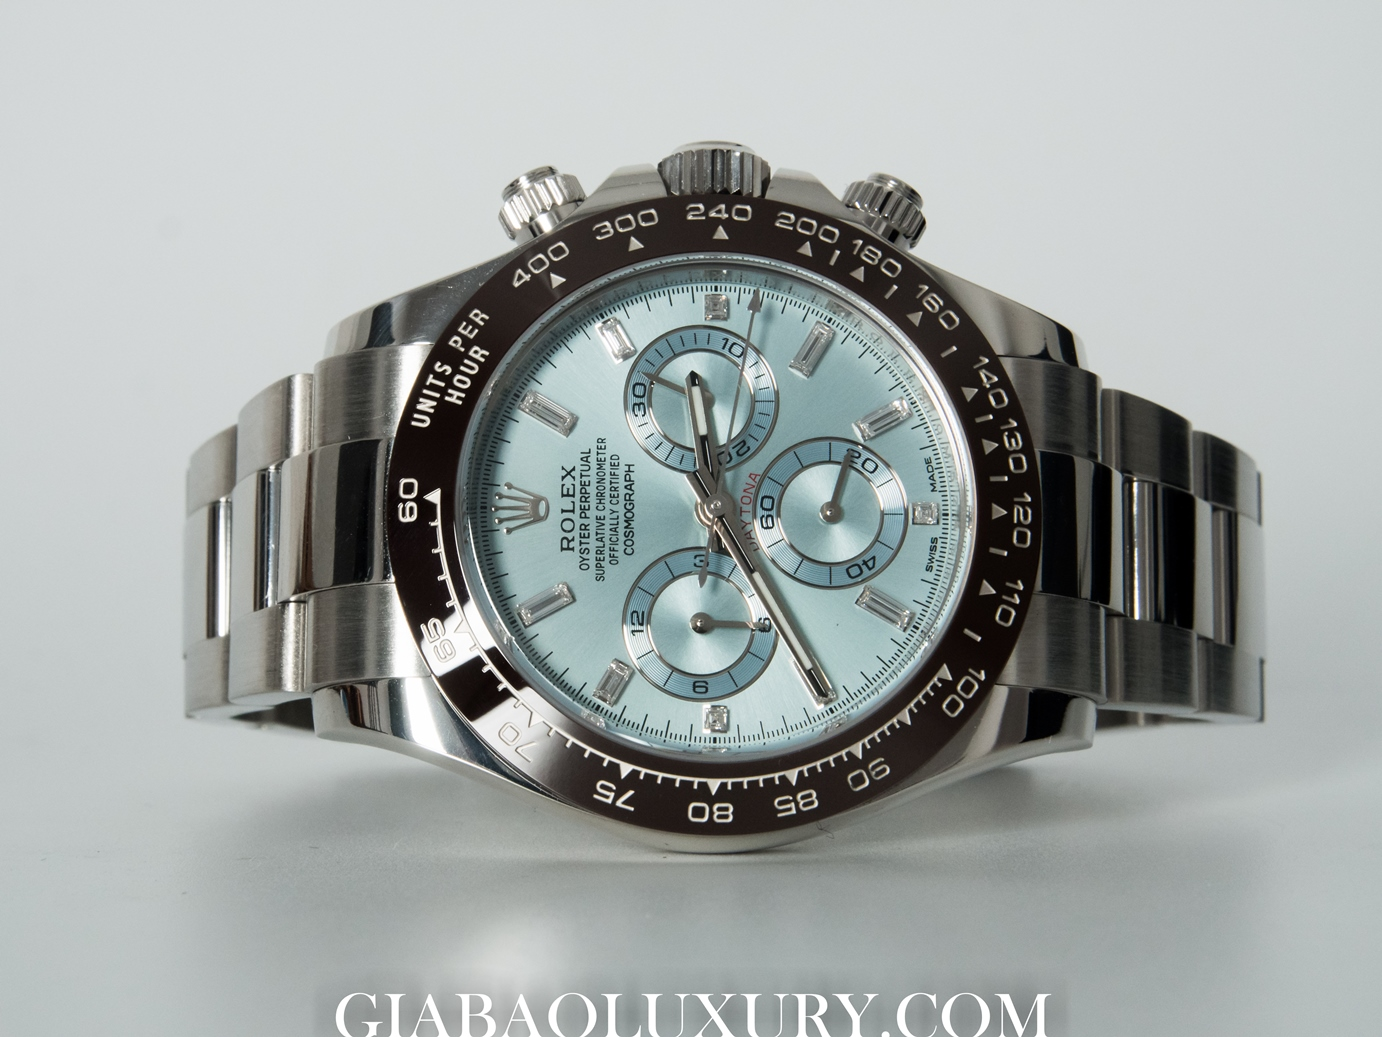 Review đồng hồ Rolex Oyster Perpetual Cosmograph Daytona 116506